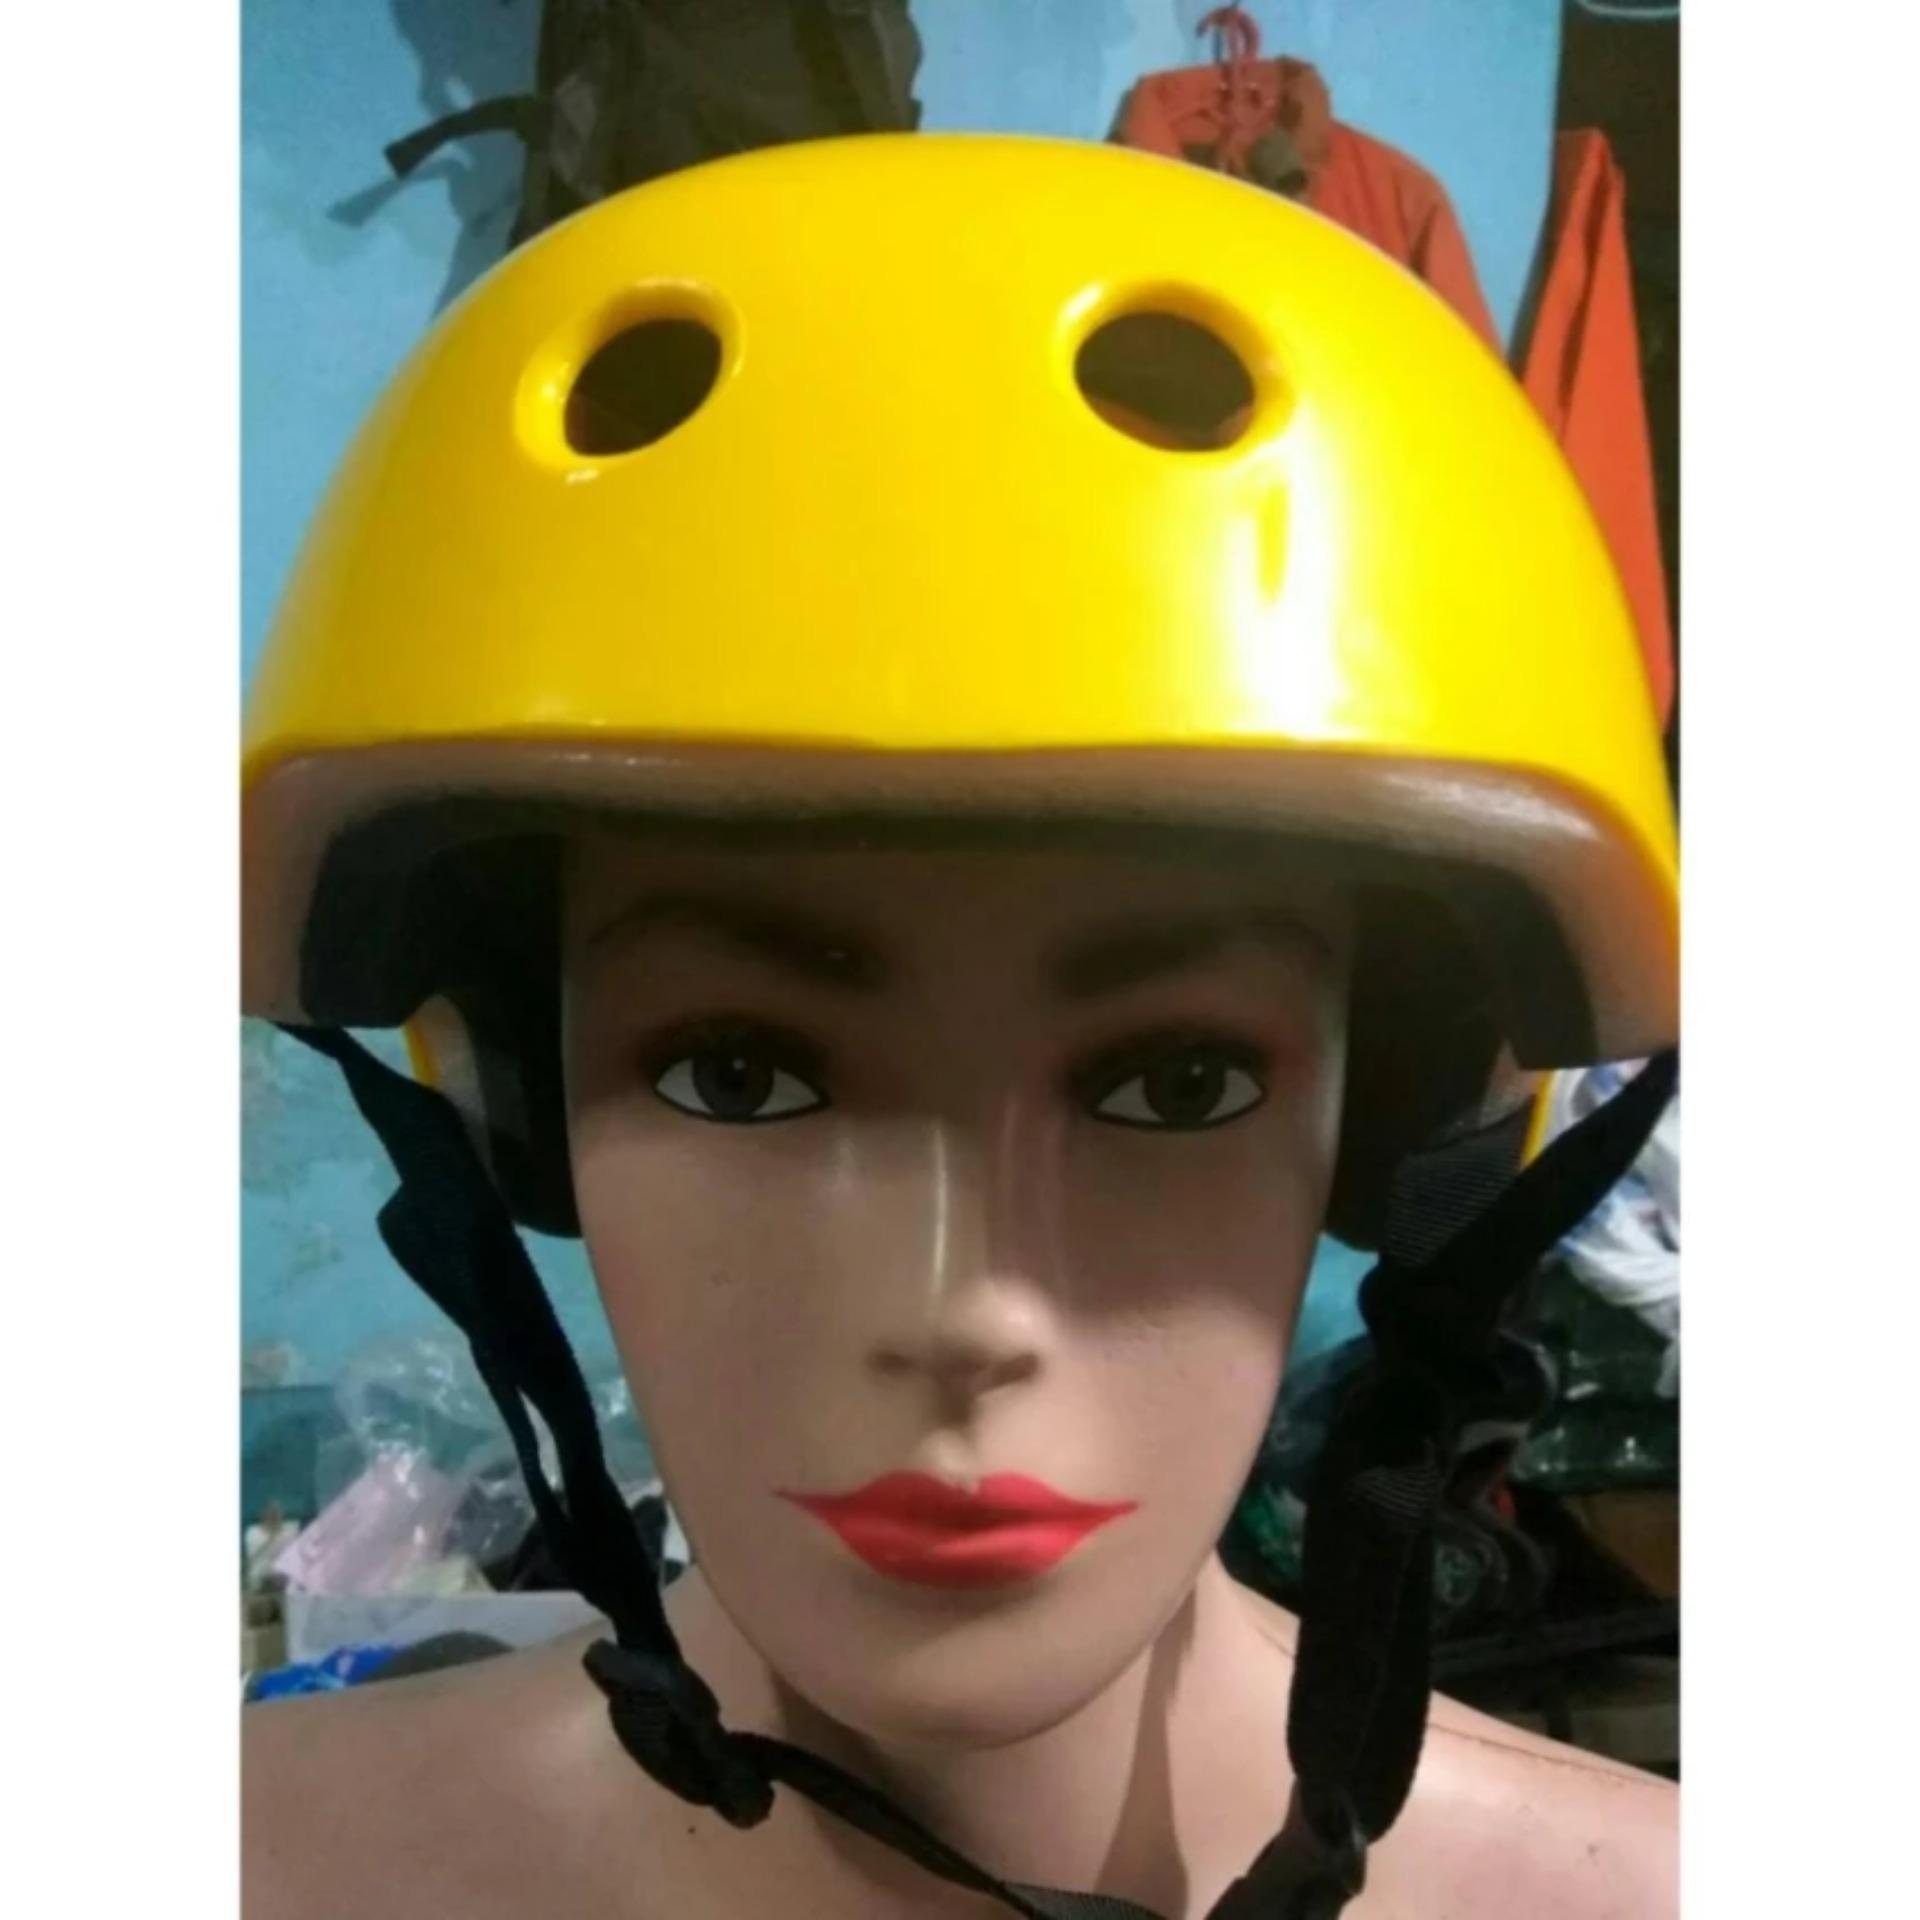 Onsight Helm Outbond Rafting Msr Sepeda Multi Fungsi Lipat Keren Modis Aman Merk Overade Plixi White Rxs Flying Fox Cycling Skate Outbound Climbing